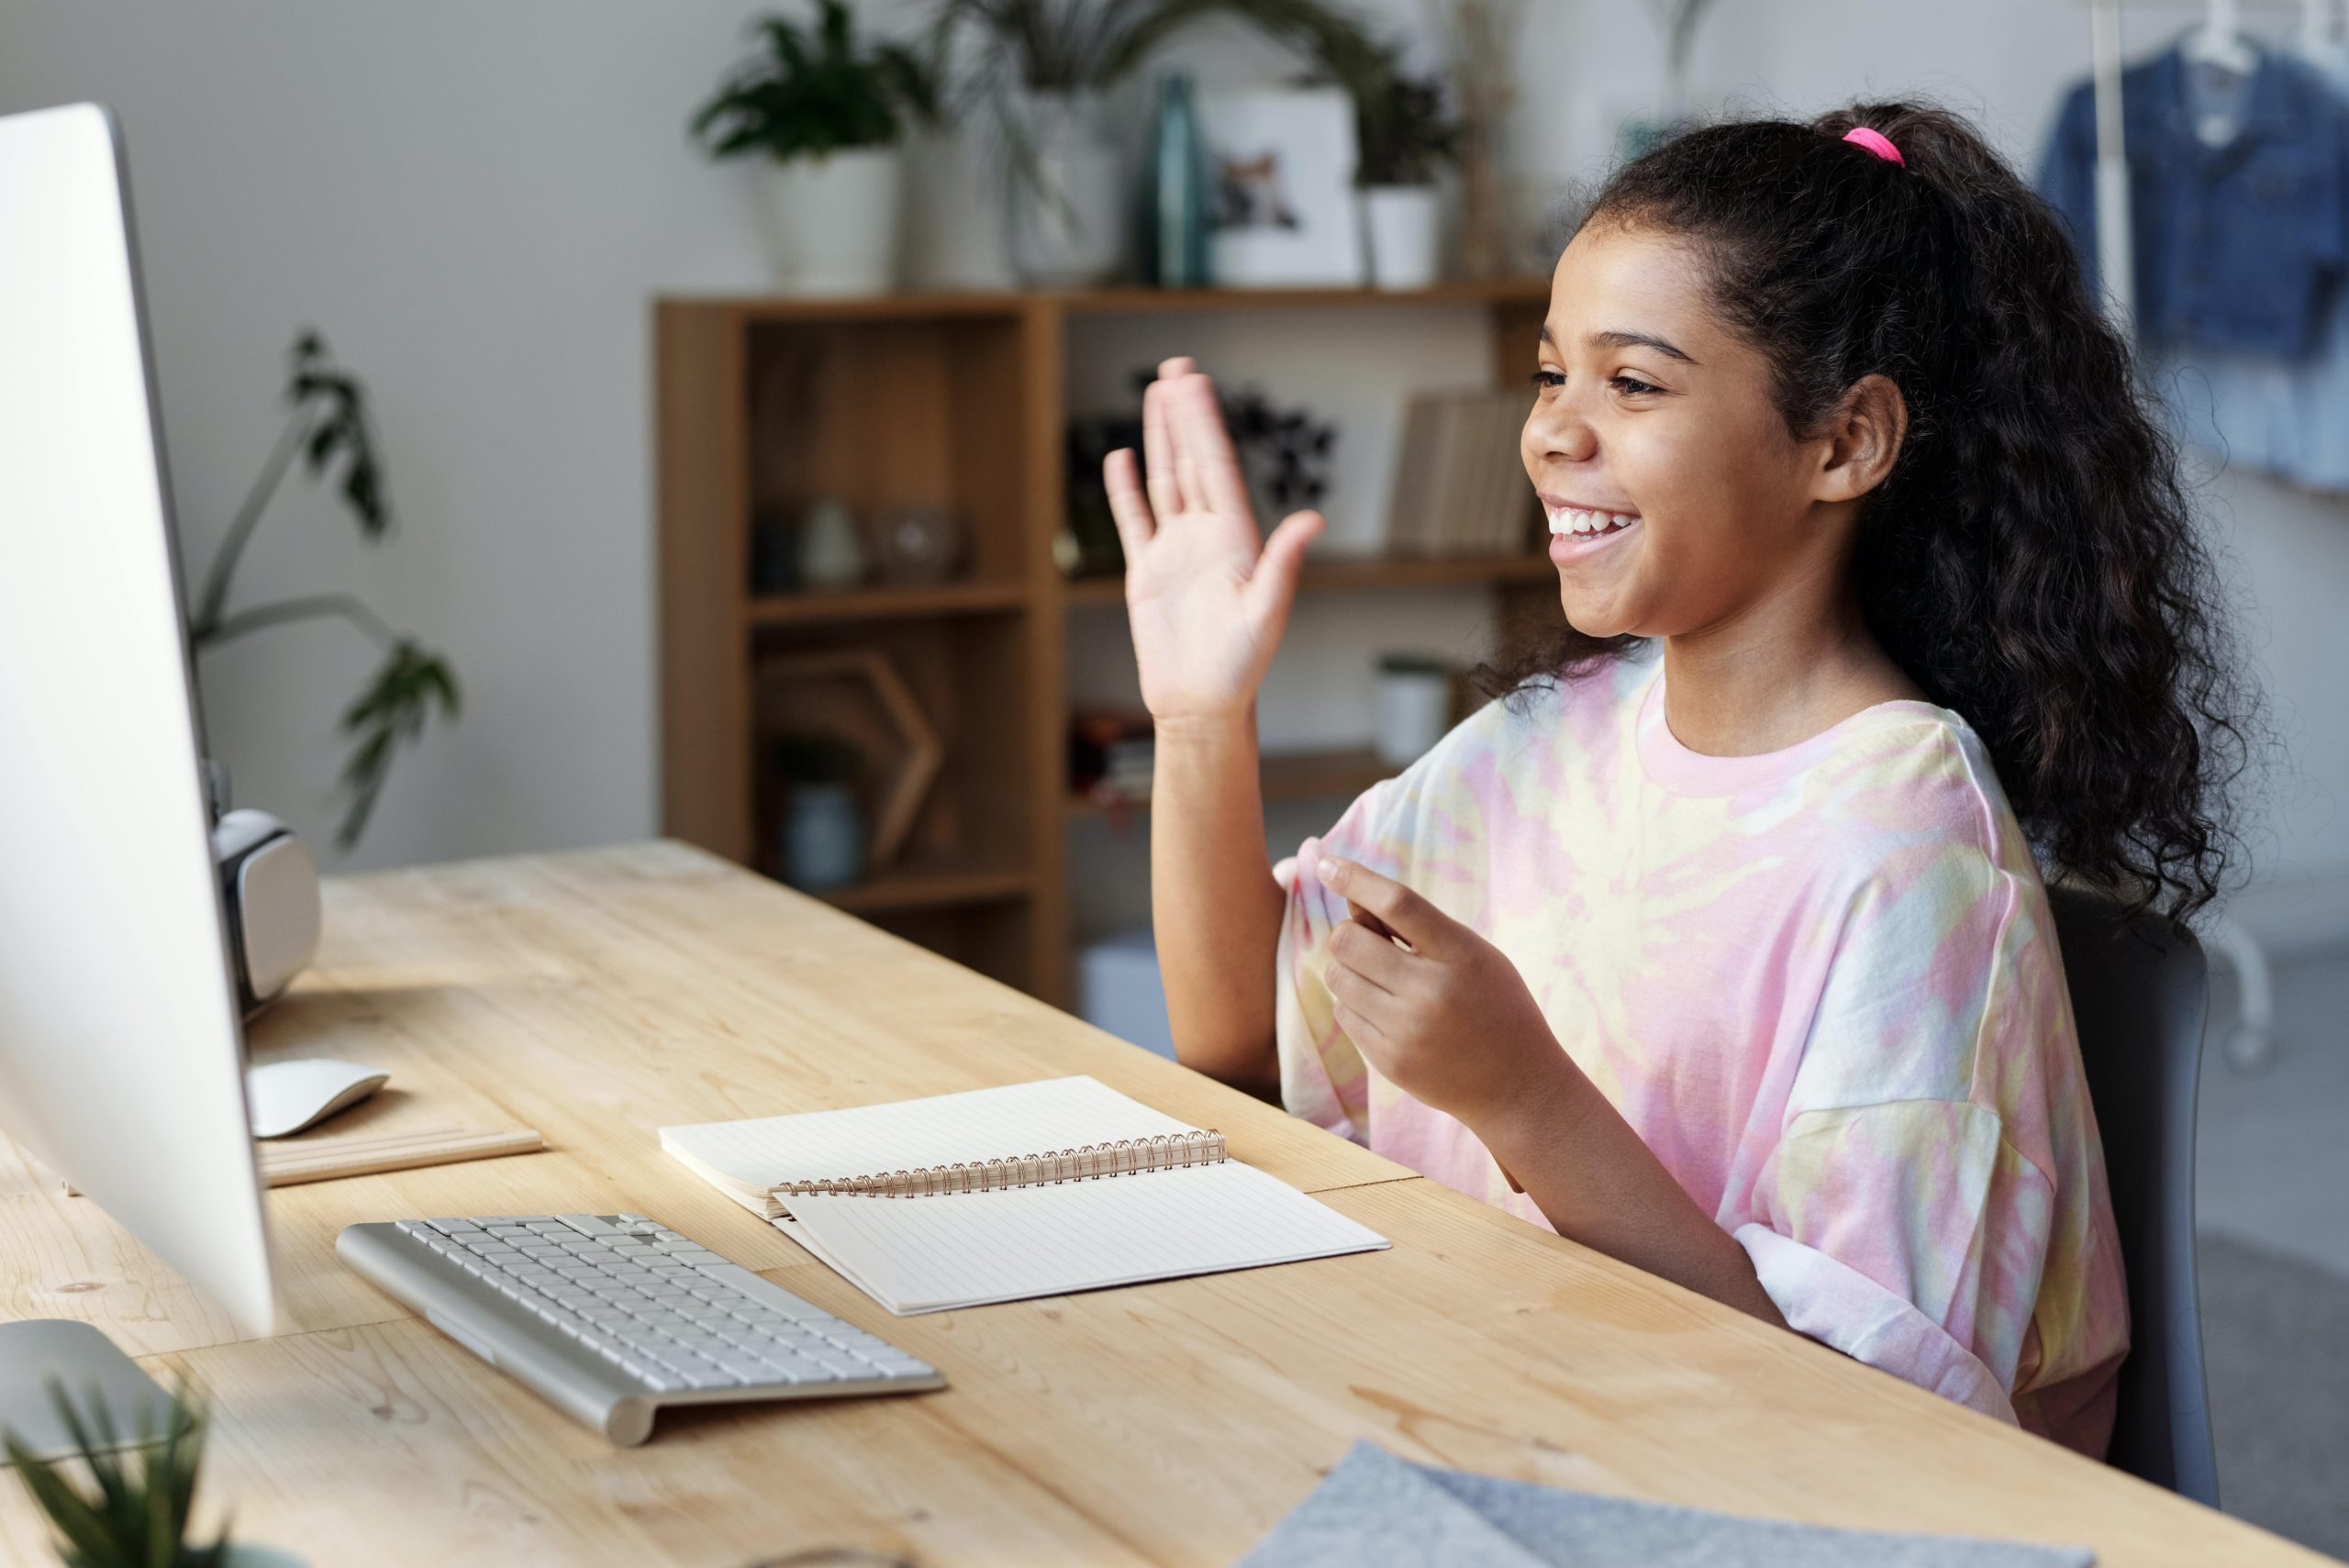 Coding helps children organize their thoughts